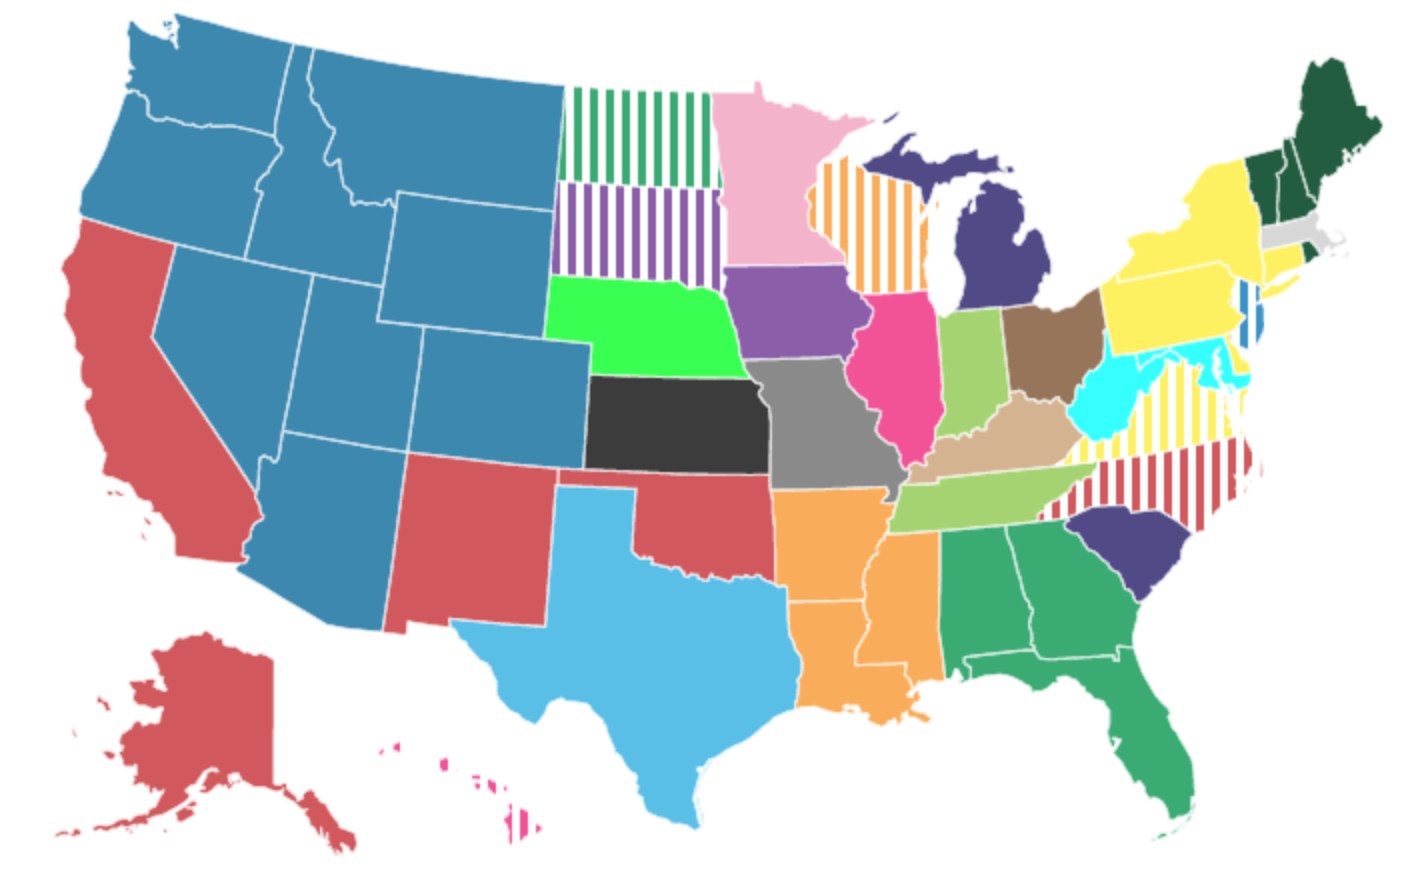 This Map Of The State Each State's Residents Hate The Most Isn't Scientific, But It Is Hilarious - Digg